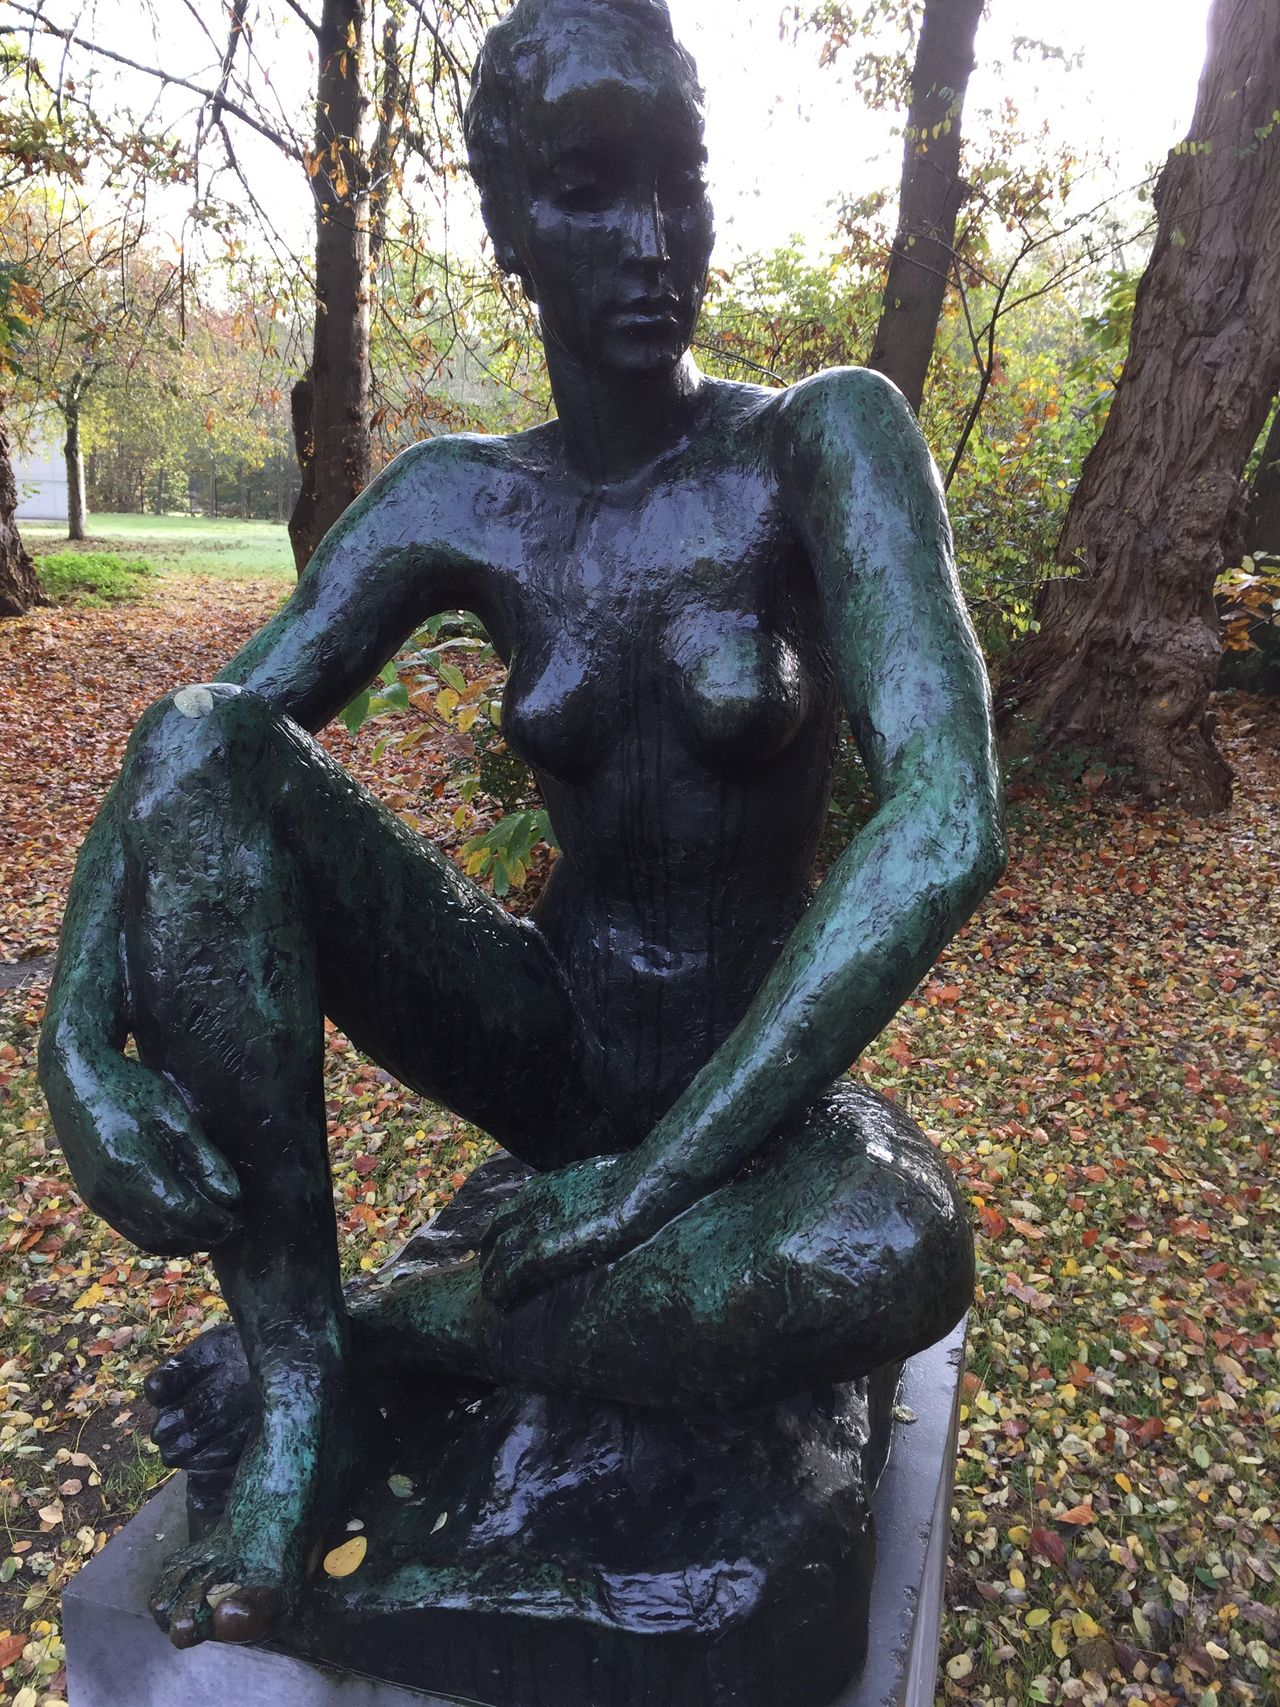 Statue Art And Craft Sculpture Tree Human Representation No People Outdoors Day Nature IPhoneography Iphone 6 Plus Art Statue Artistic ArtWork Black Outdoor Photography Middelheim Museum